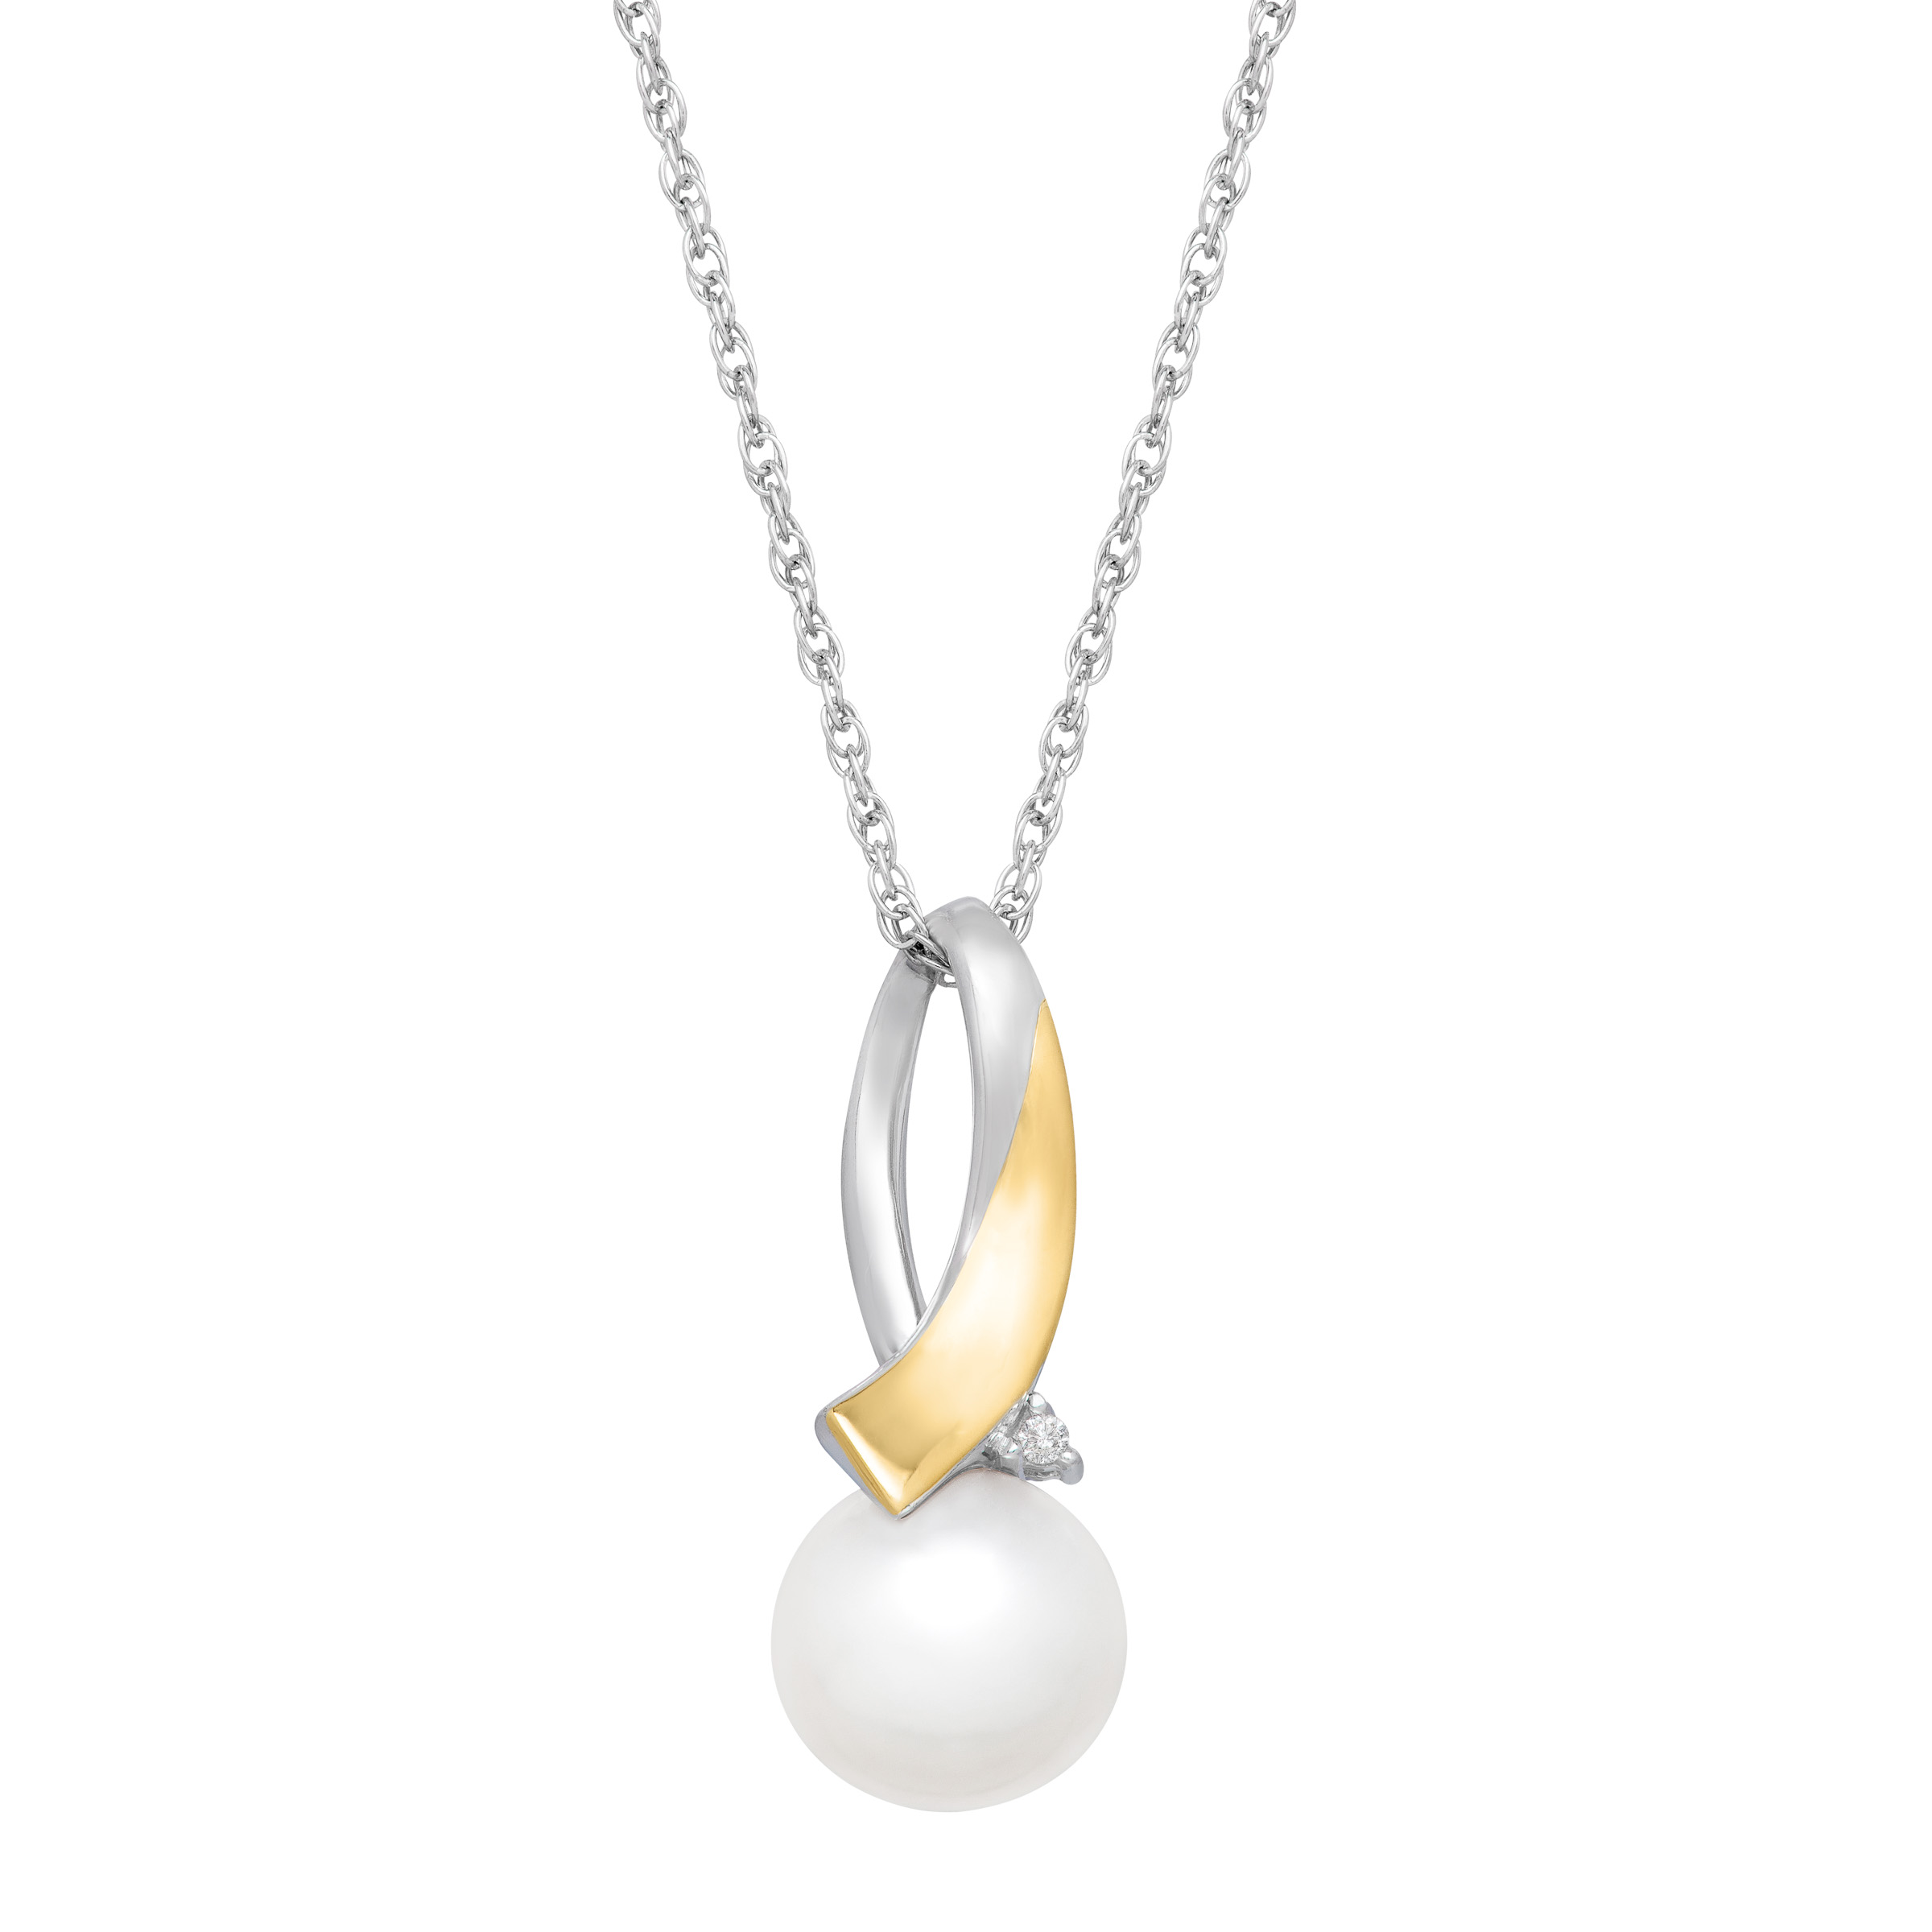 Duet Freshwater Pearl Drop Pendant Necklace with Diamonds in Sterling Silver and 14kt Gold